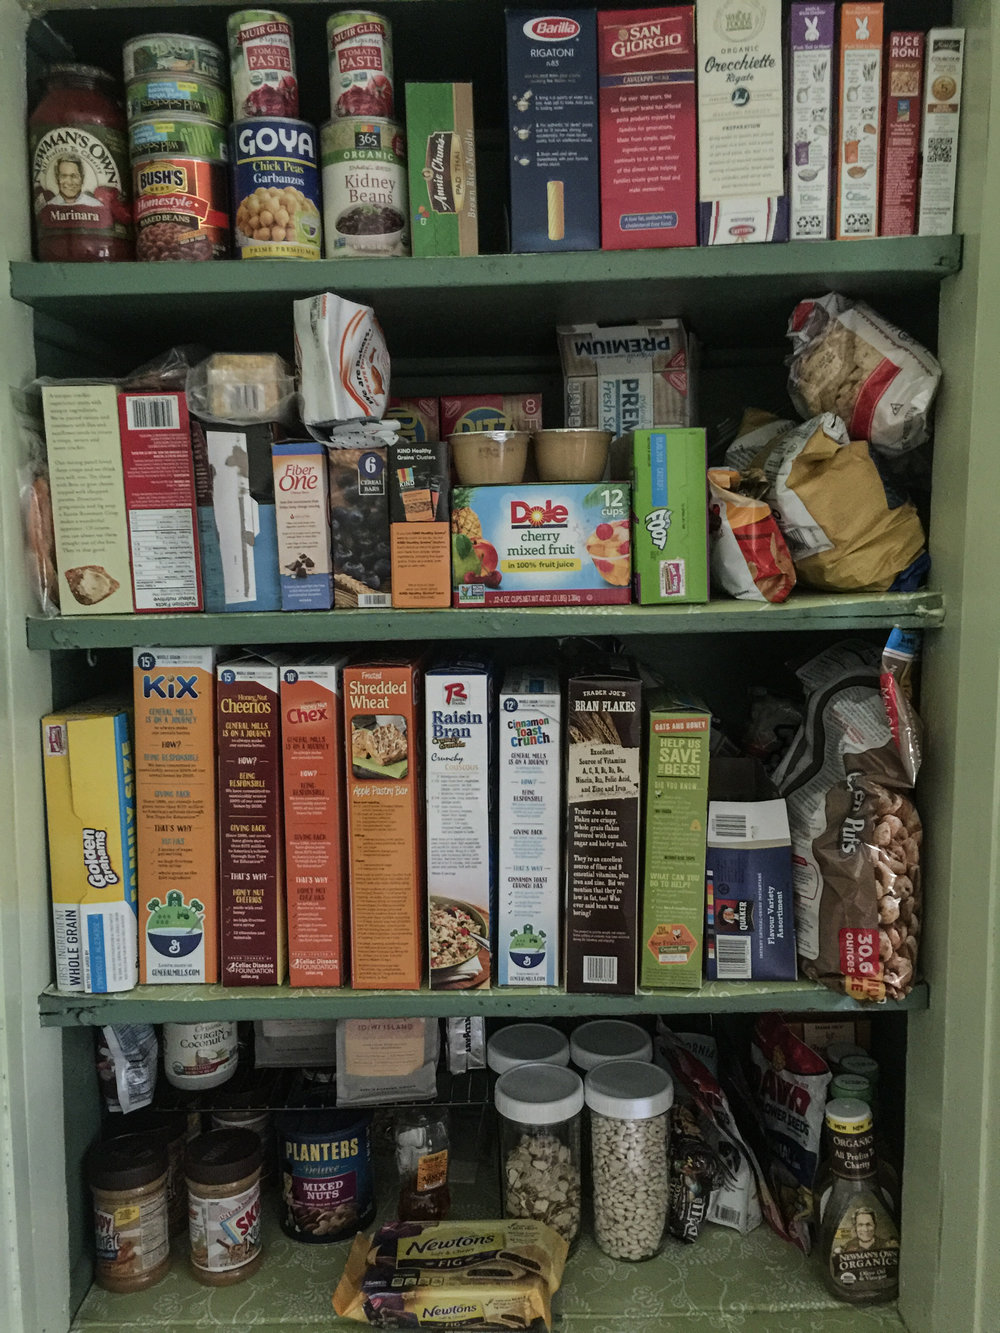 The Hennig's cereal collection is top notch.